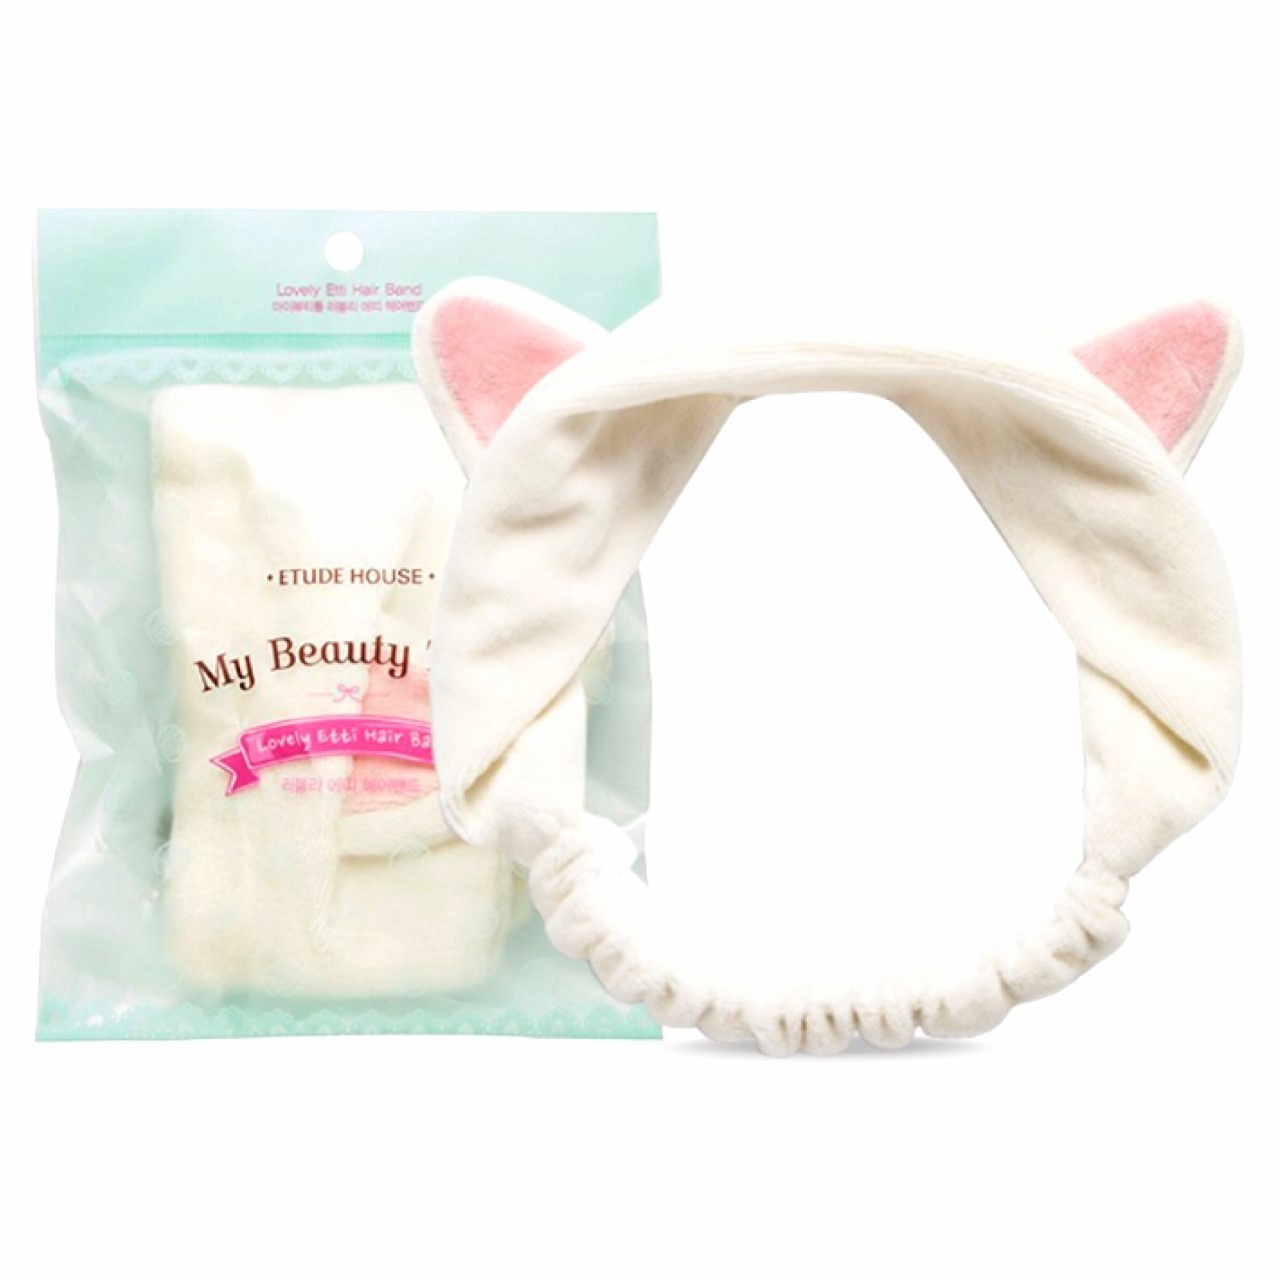 ПОВЯЗКА НА ГОЛОВУ ETUDE HOUSE MY BEAUTY TOOL LOVELY ETTI HAIR BAND